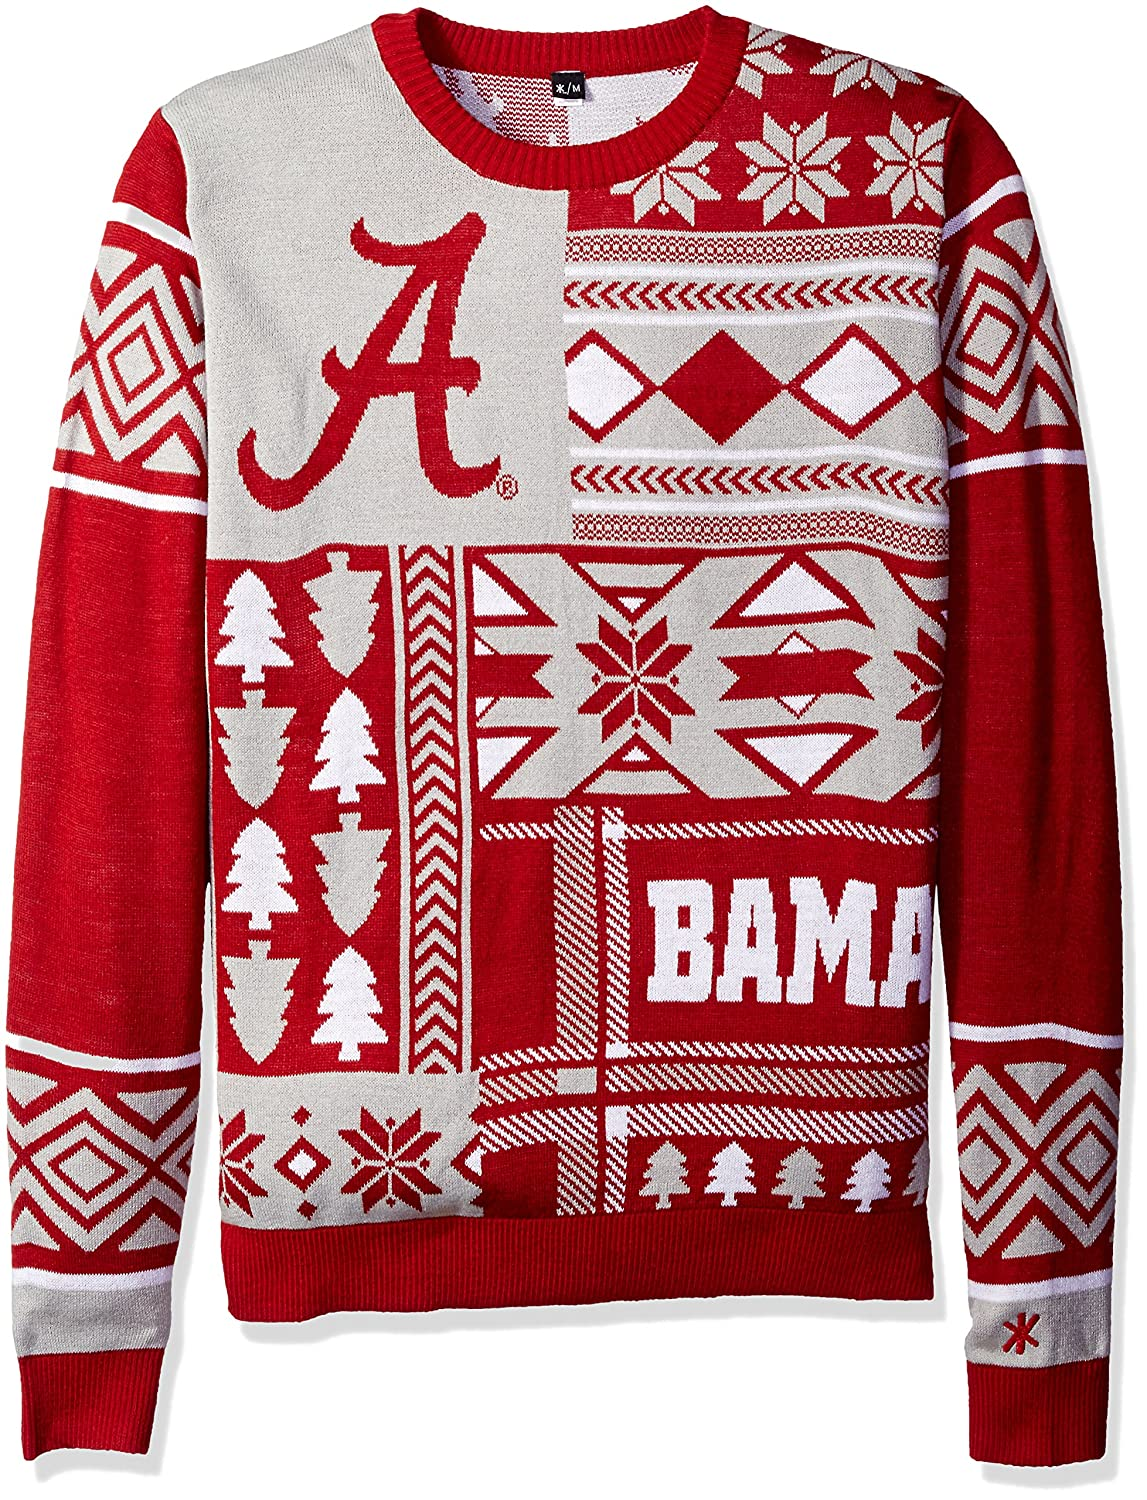 Amazon.com : FOCO NCAA Patches Ugly Sweater - Pick Team : Sports ...